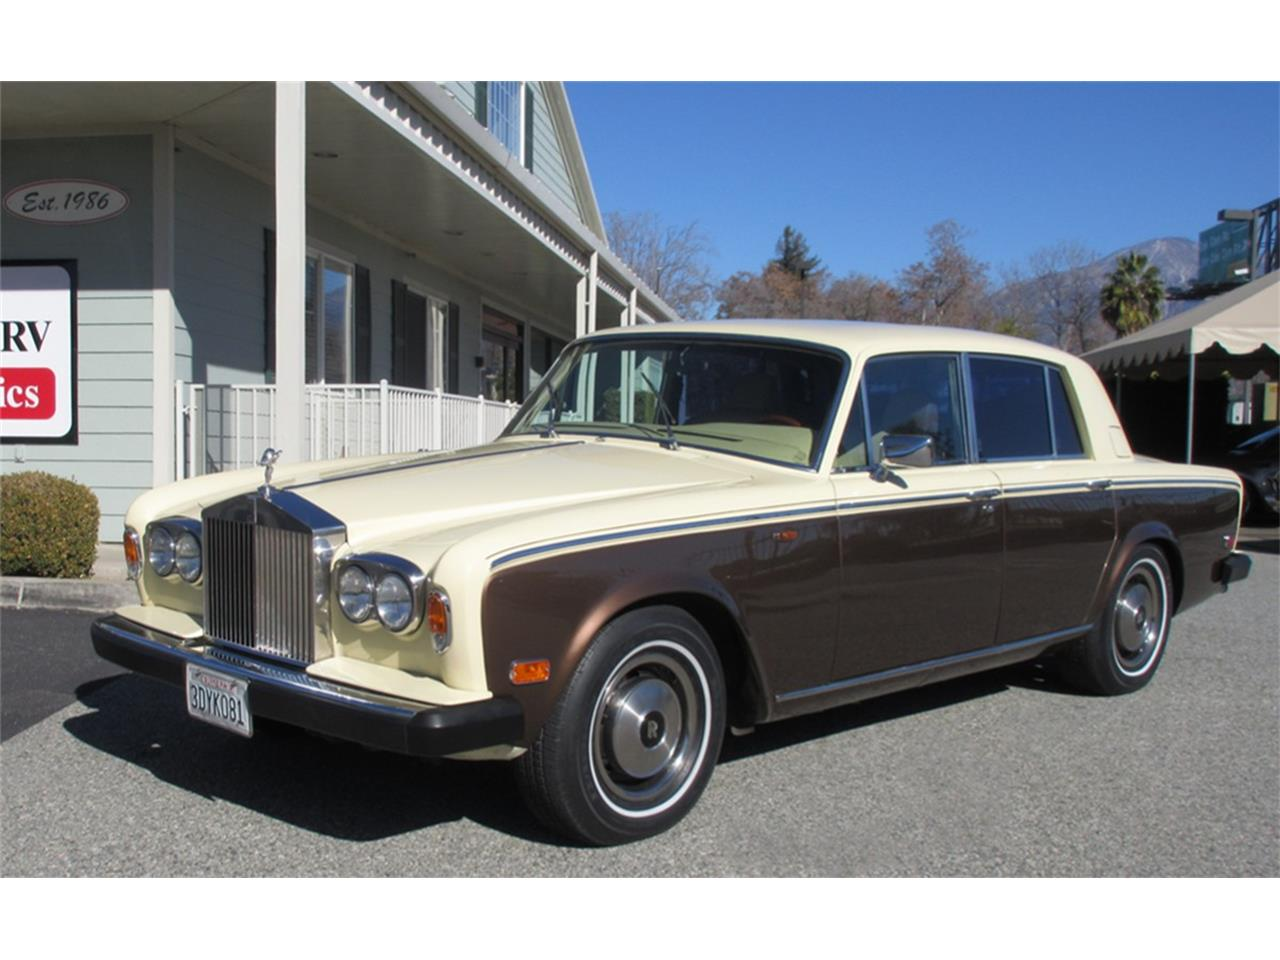 1978 Rolls-Royce Silver Cloud II for sale in Redlands, CA